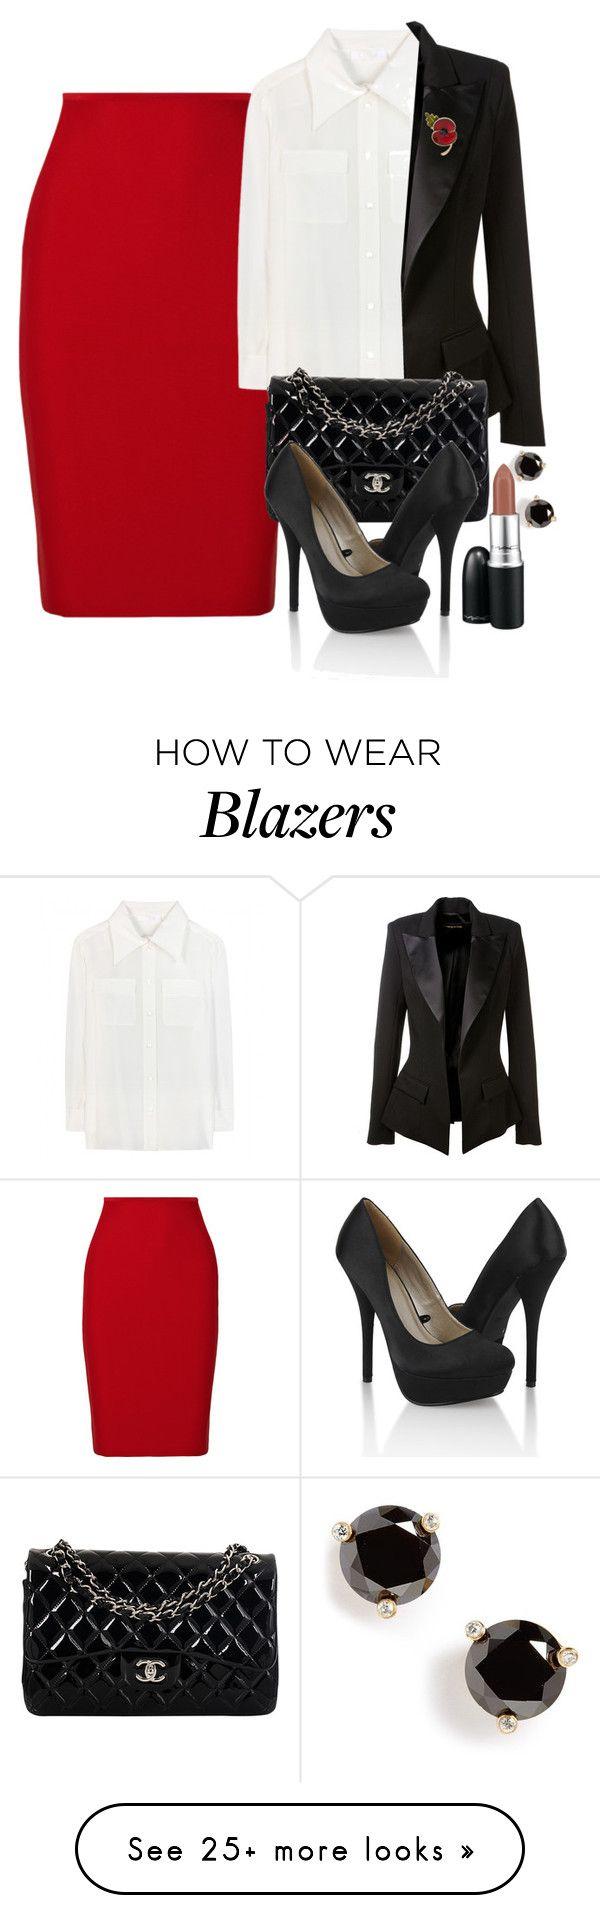 """Untitled #3138"" by natalyasidunova on Polyvore featuring Roland Mouret, Chloé, Alexandre Vauthier, Chanel, Forever 21, Kate Spade and MAC Cosmetics"